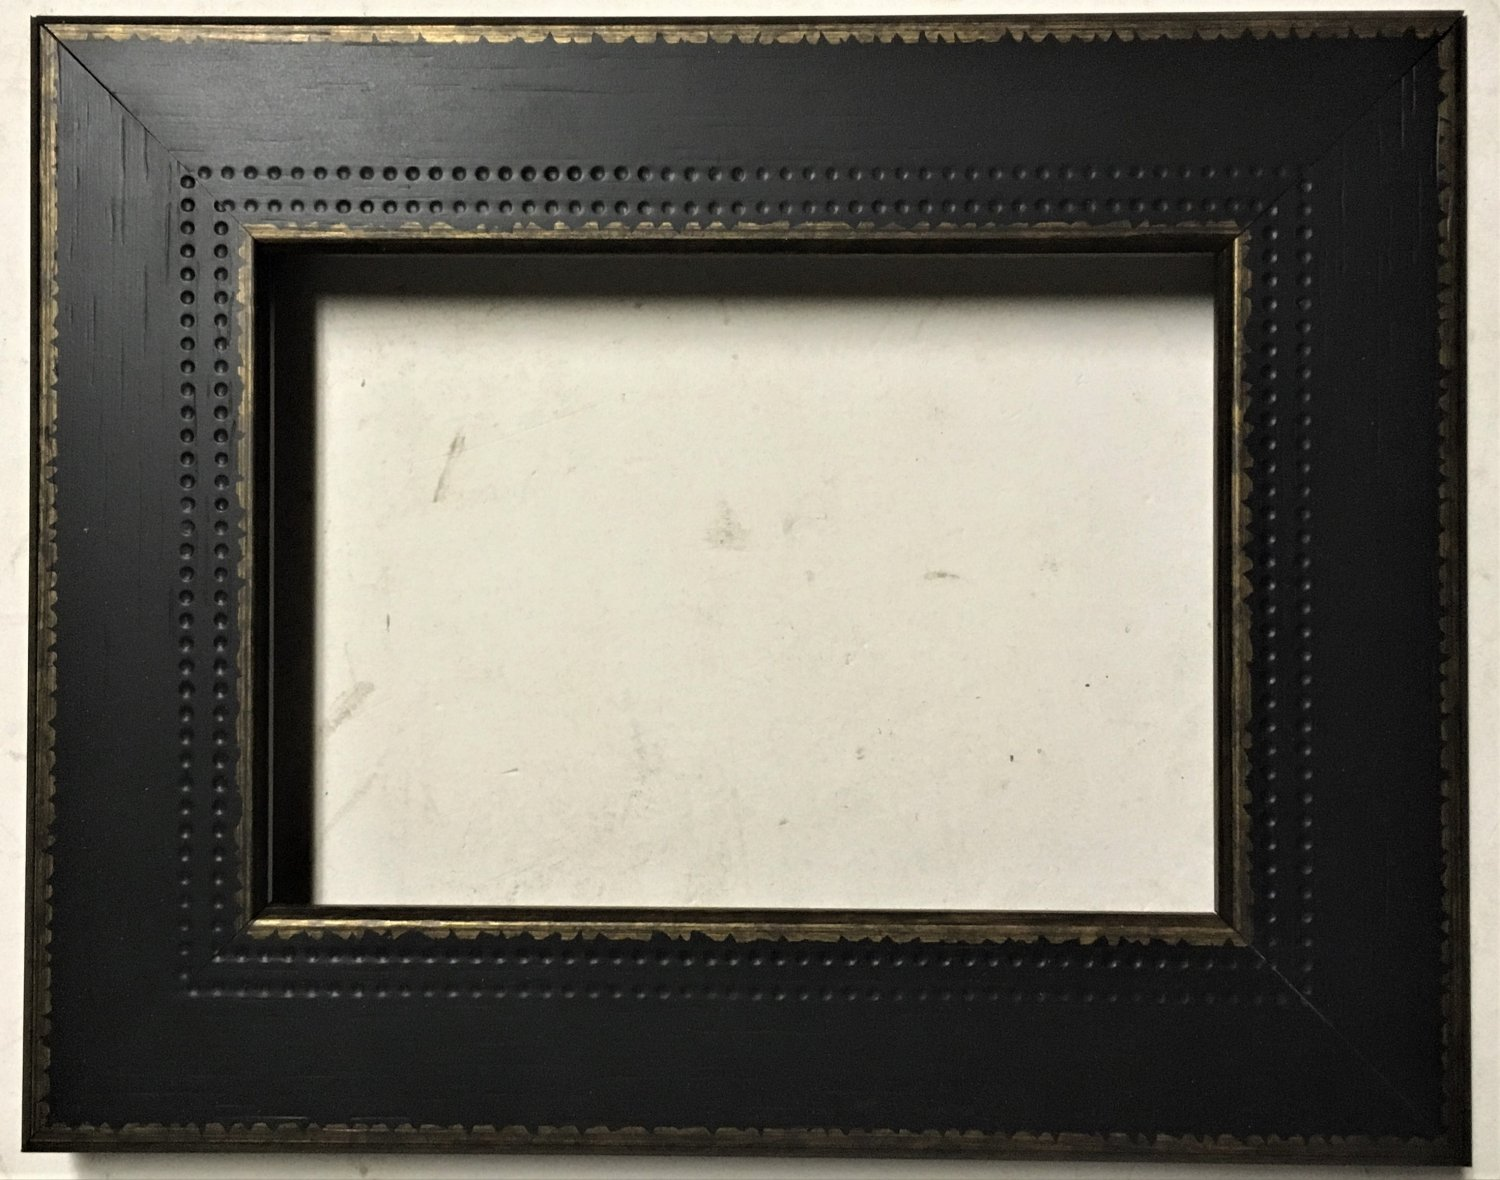 """9 x 12 1-3/4"""" Black w/Gold Picture Frame"""